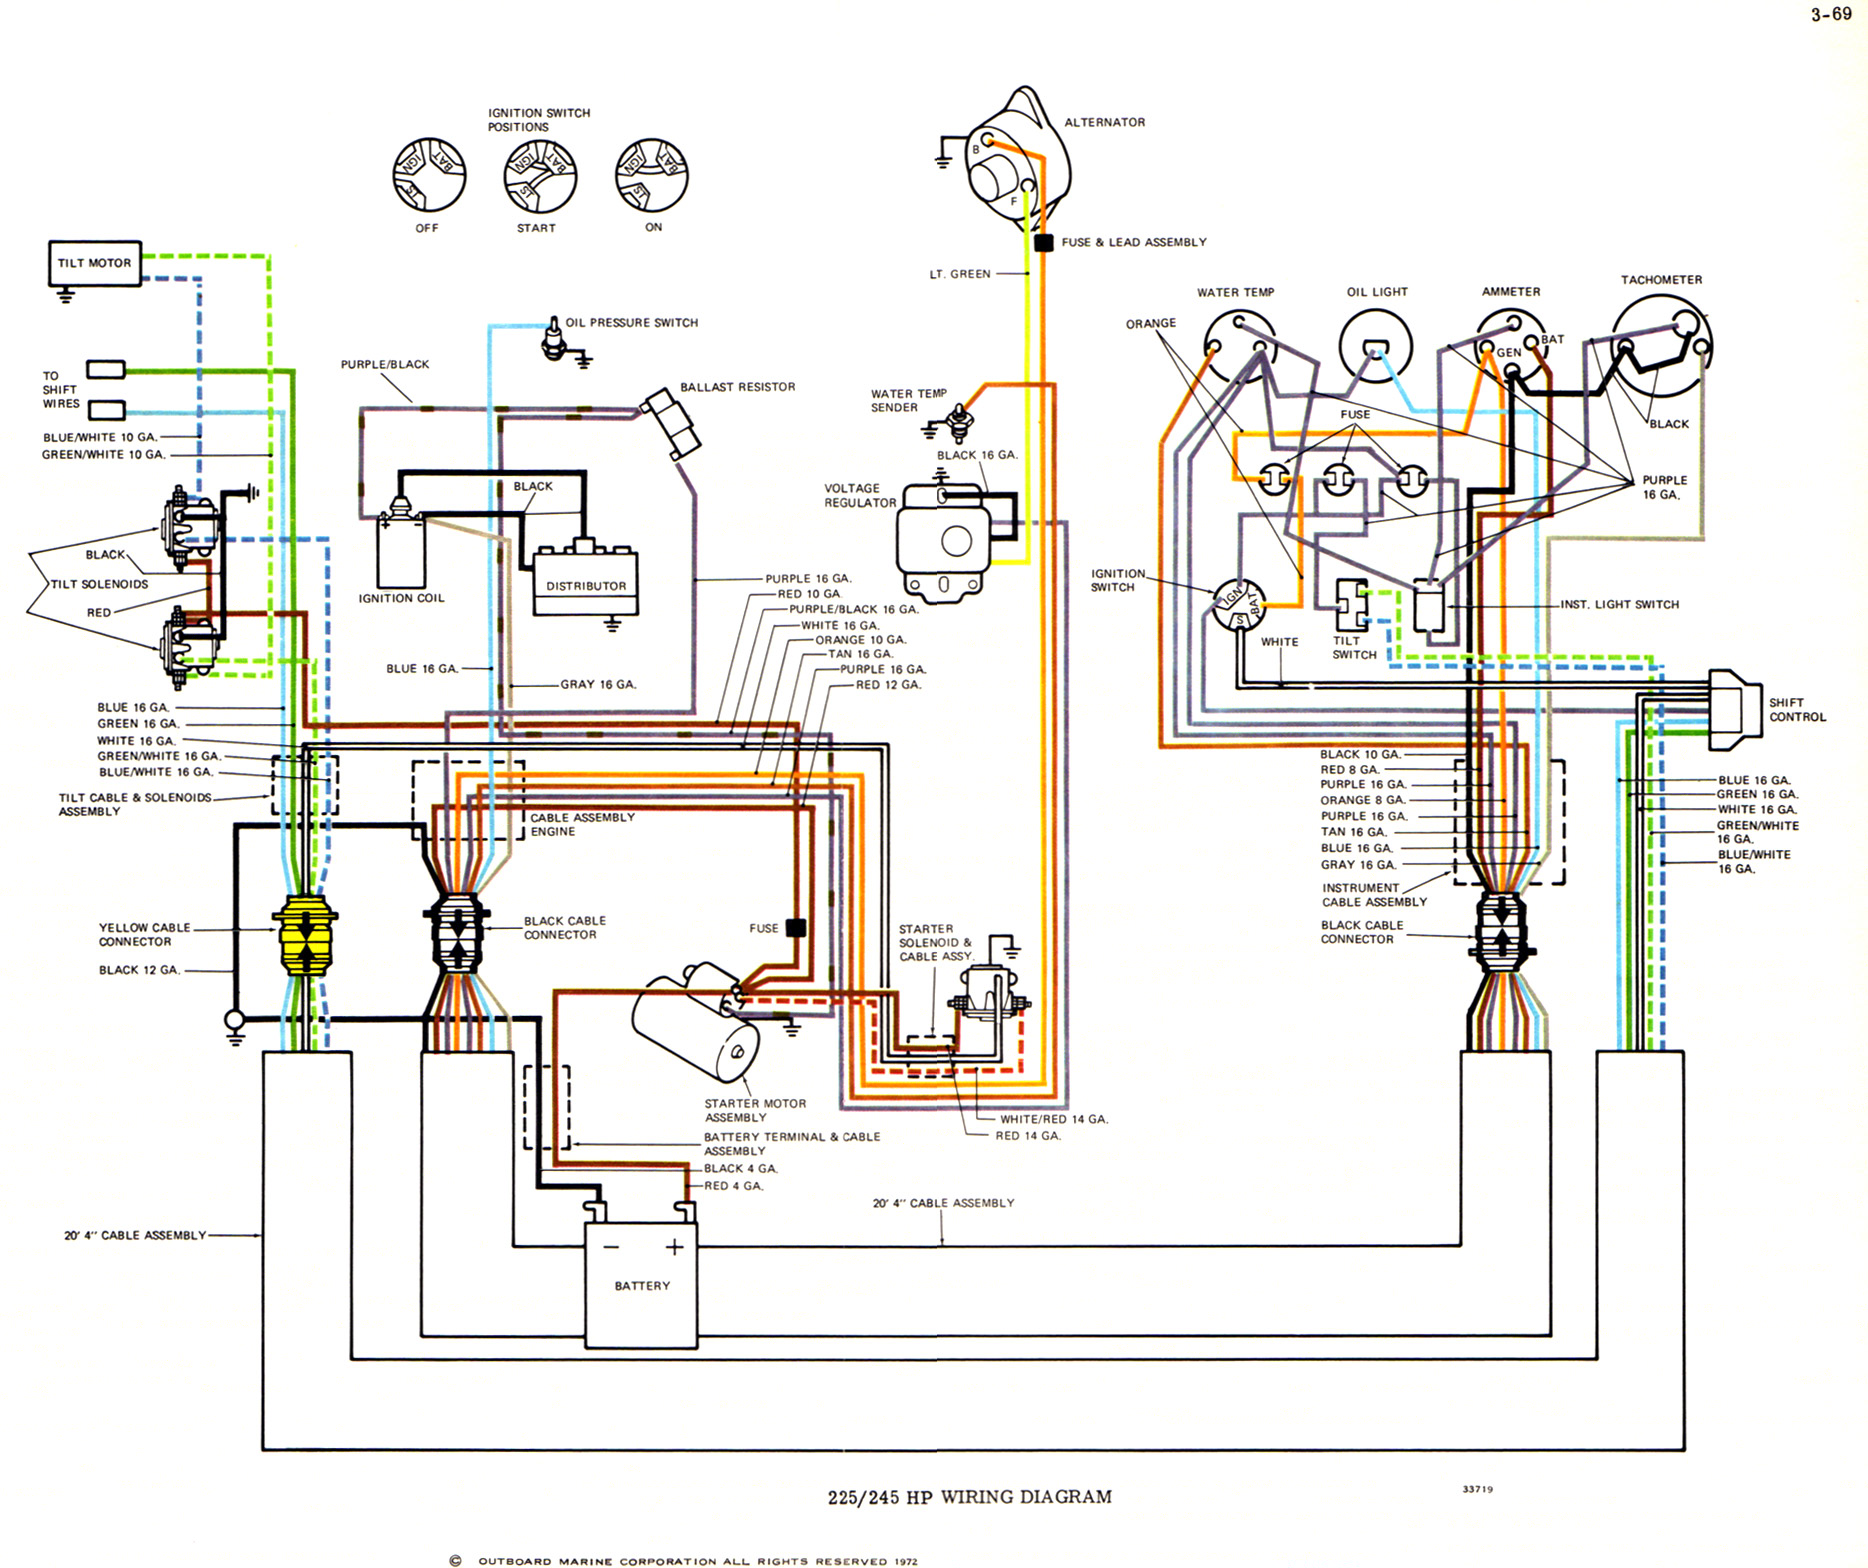 Evinrude Omc Ignition Switch Wiring Diagram | New Wiring ... on